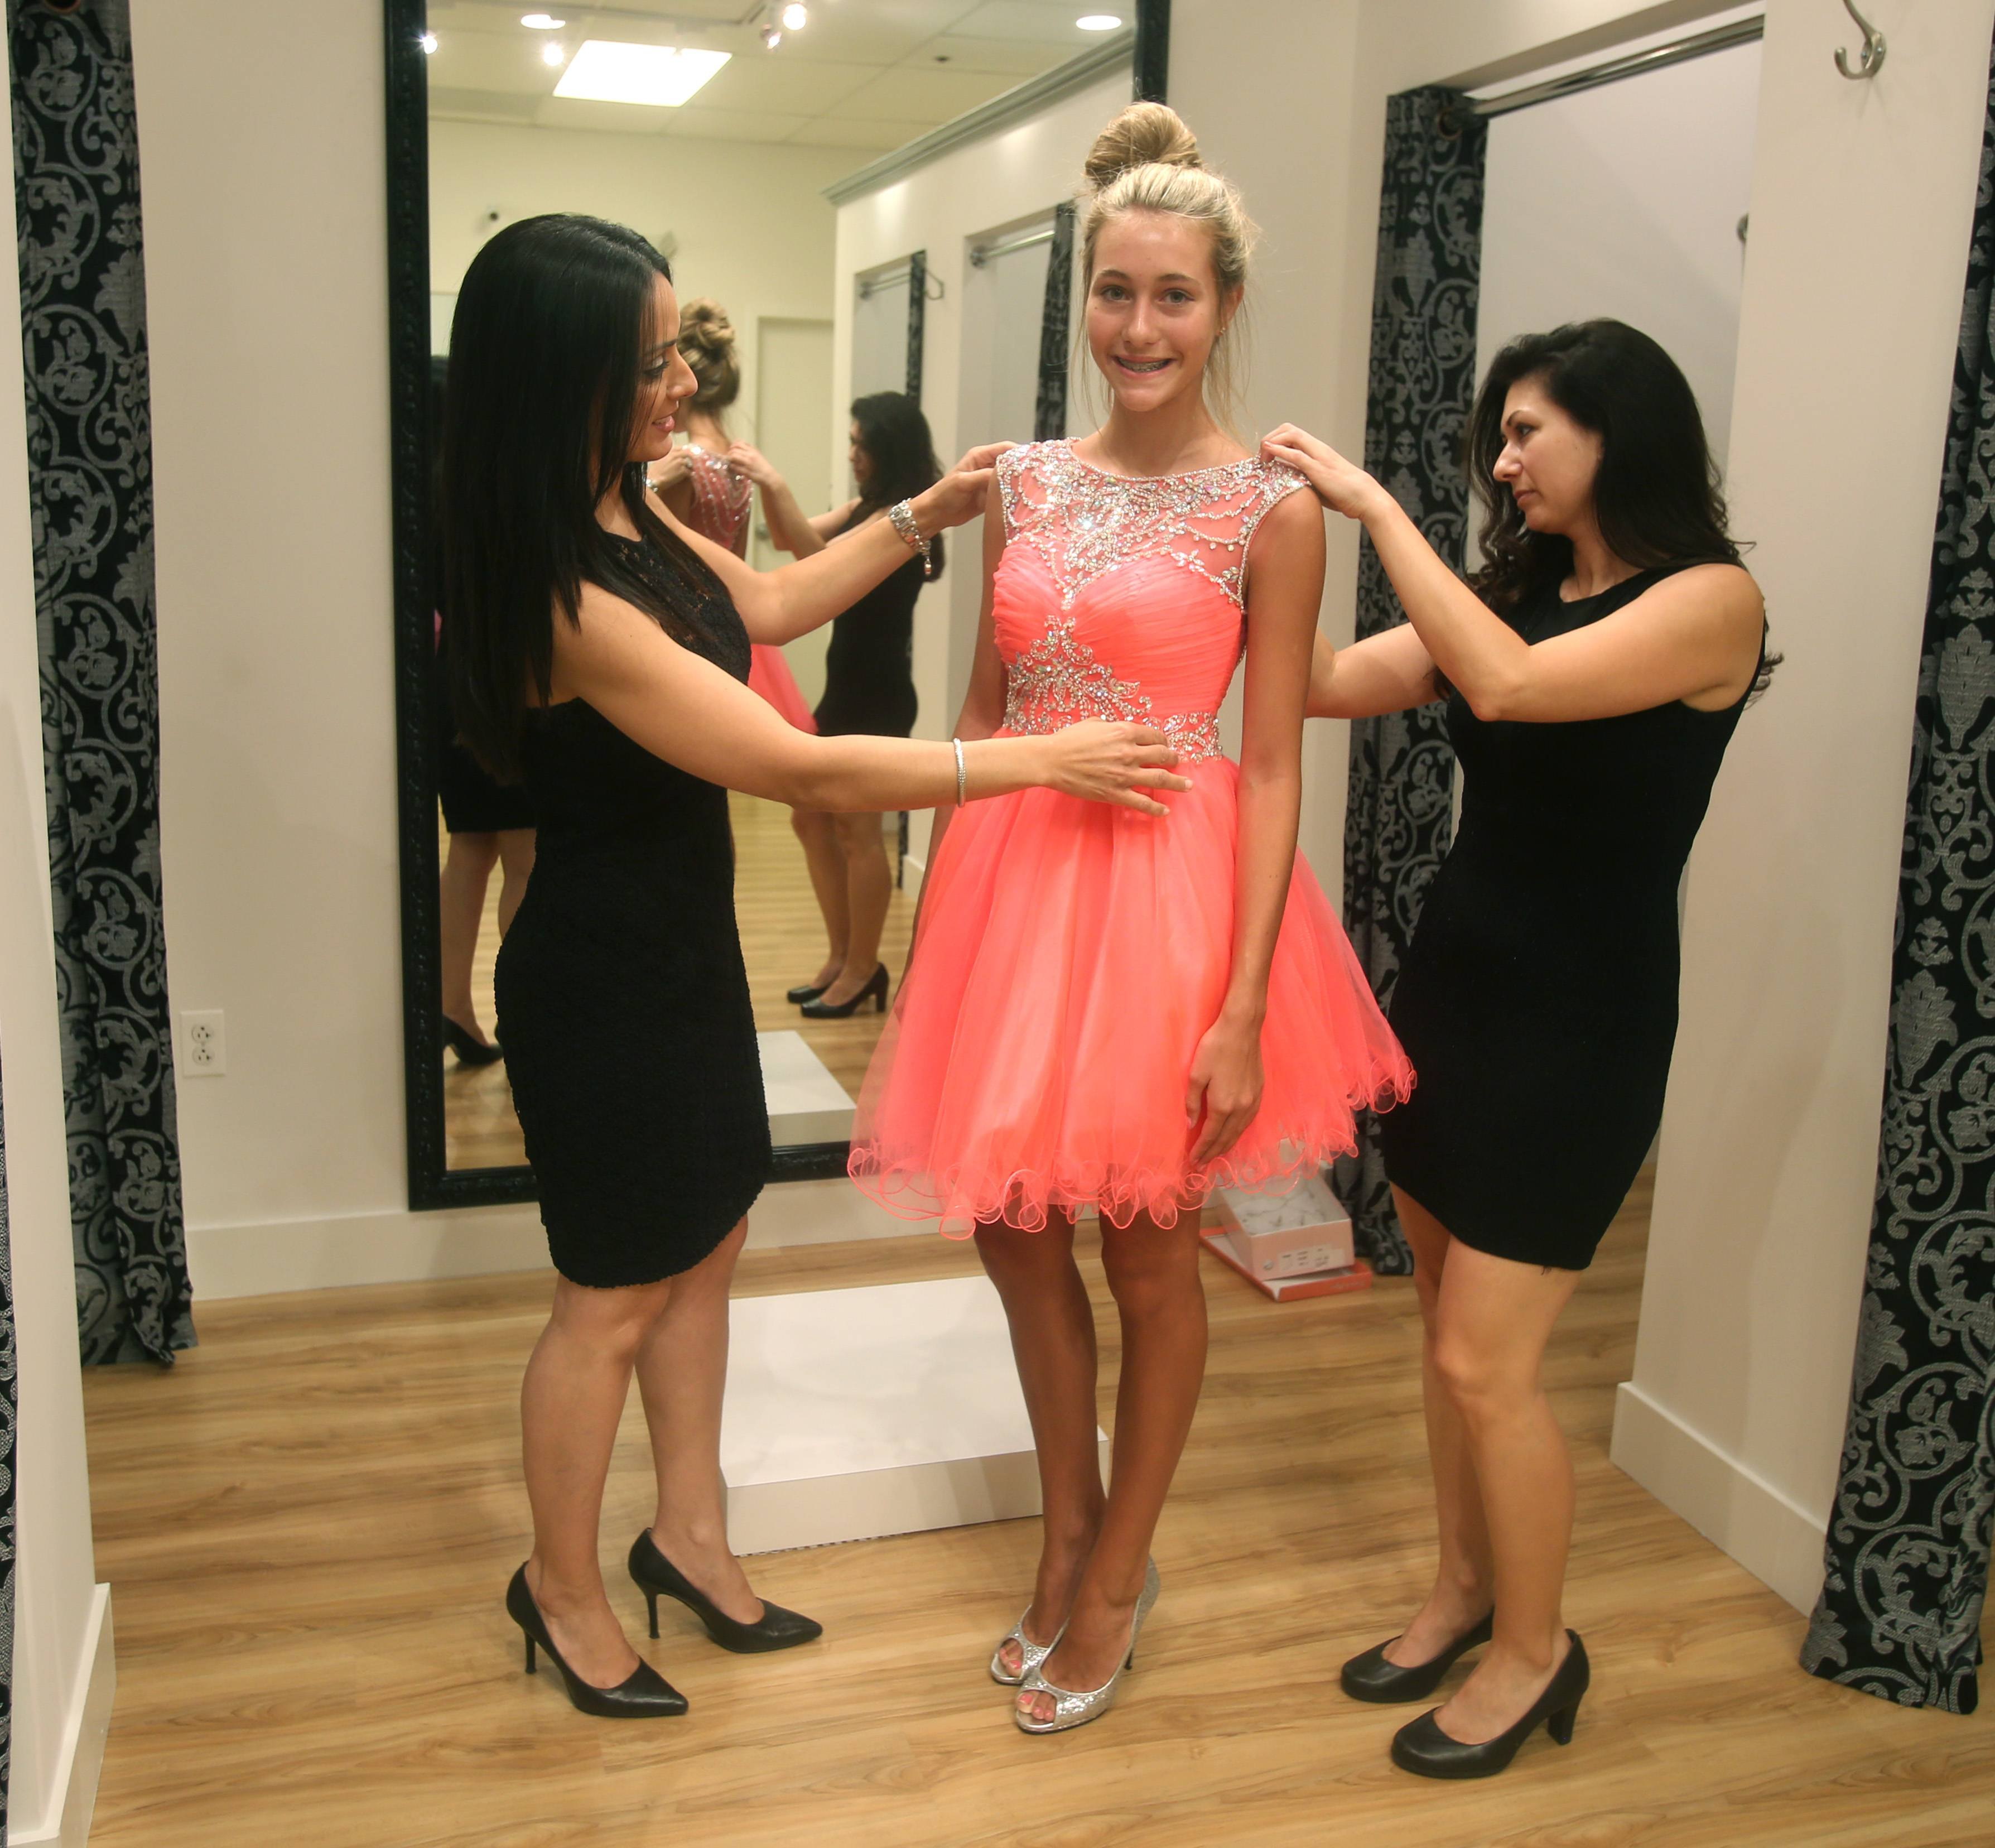 Bri'Zan Couture owner Sue Zanayed-Cerulli, left, and employee Tara Molinero fit a homecoming dress for Aliyah Hoff of Yorkville.